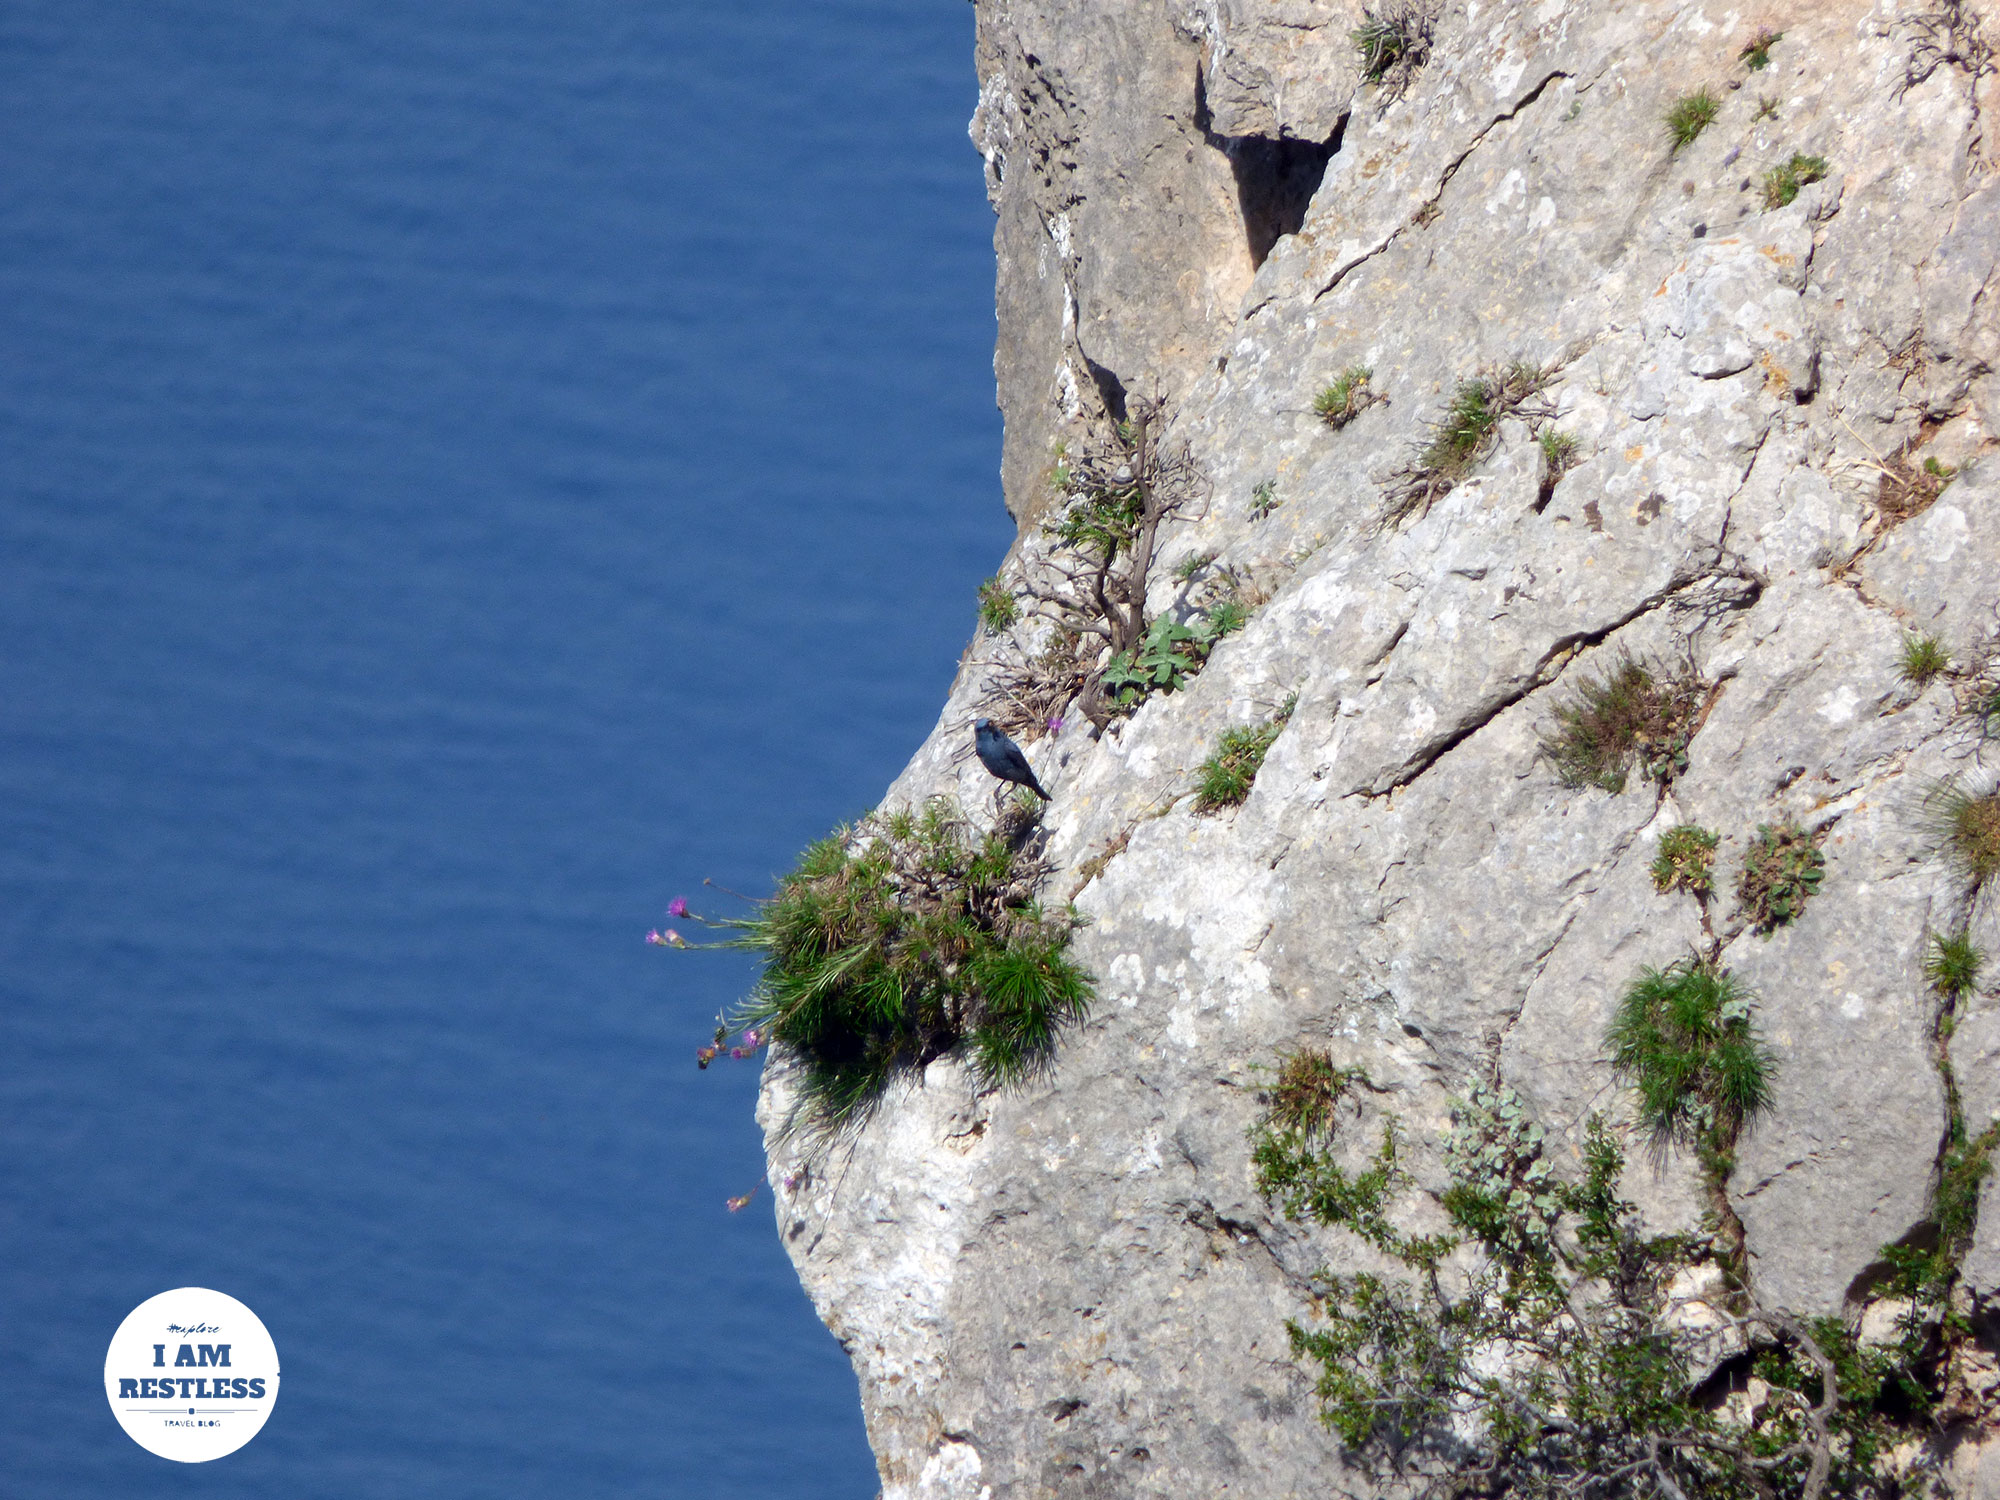 What-to-See-in-Greece-The-Scenic-Lookout-at-BellEkklisia-Agia-Paraskevi-Εκκλησία-Αγία-Παρασκευή---4.jpg